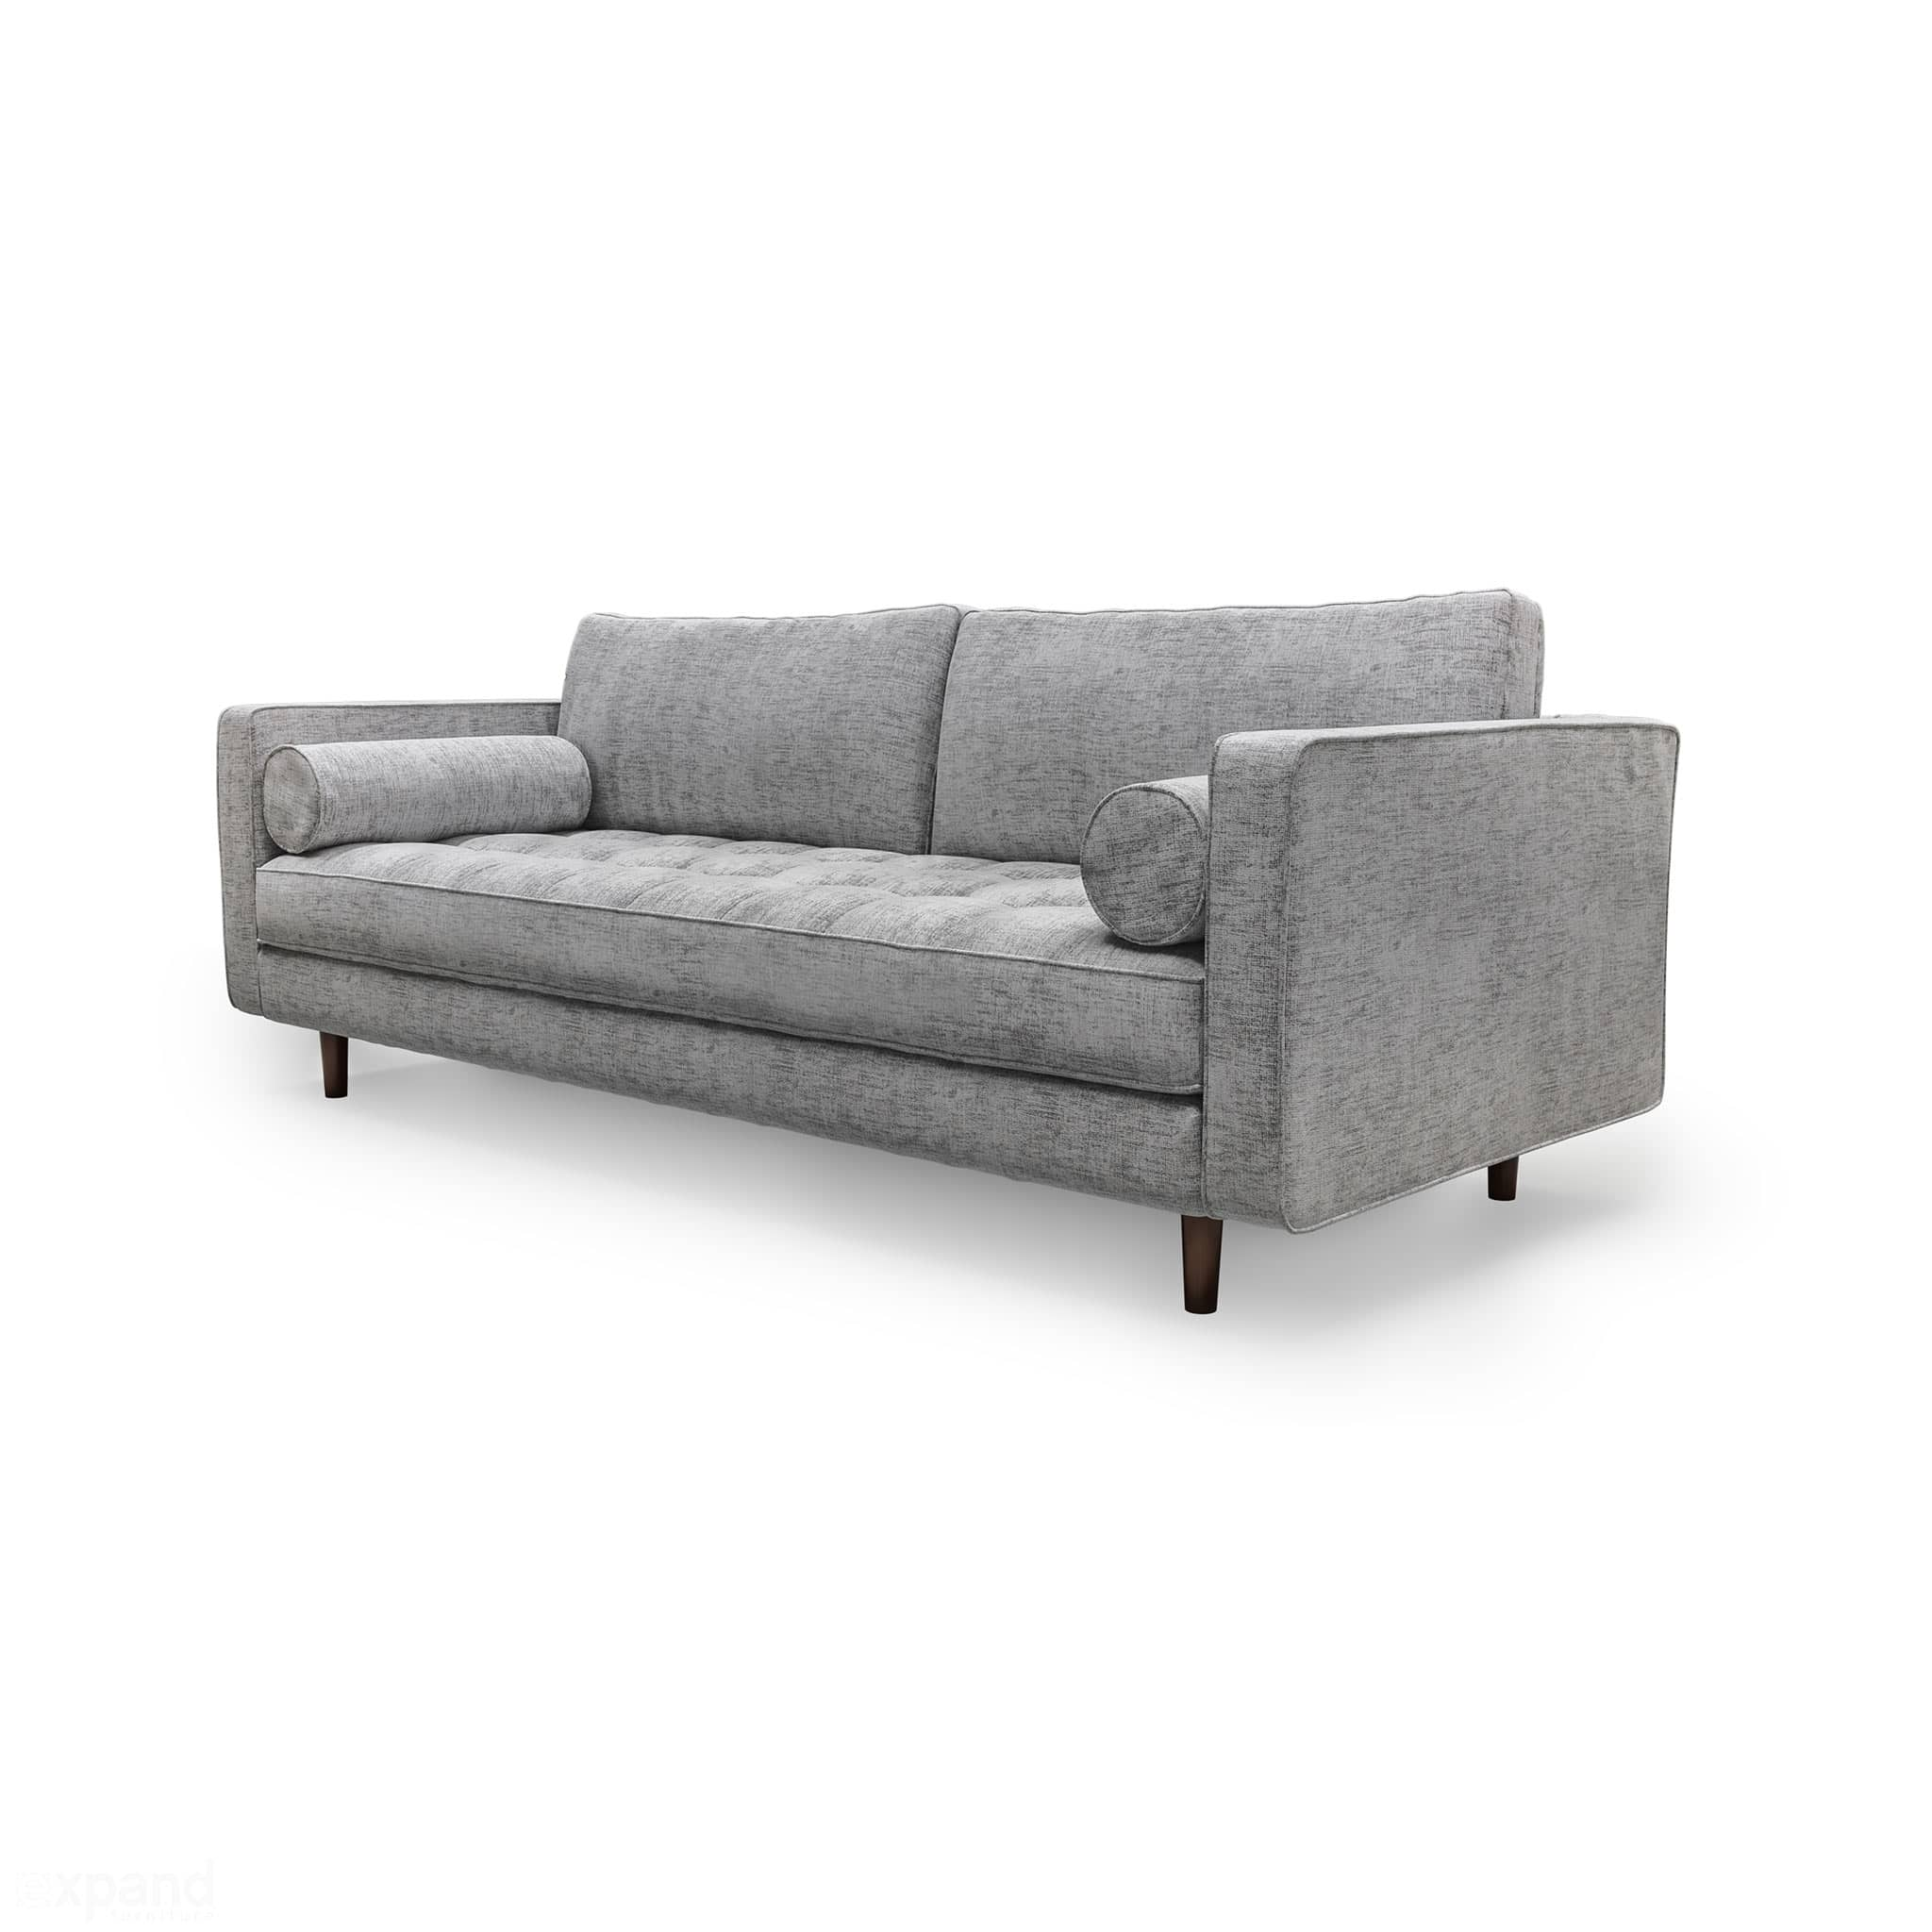 Scandormi Modern Sofa: Grey mid-century tufted couch